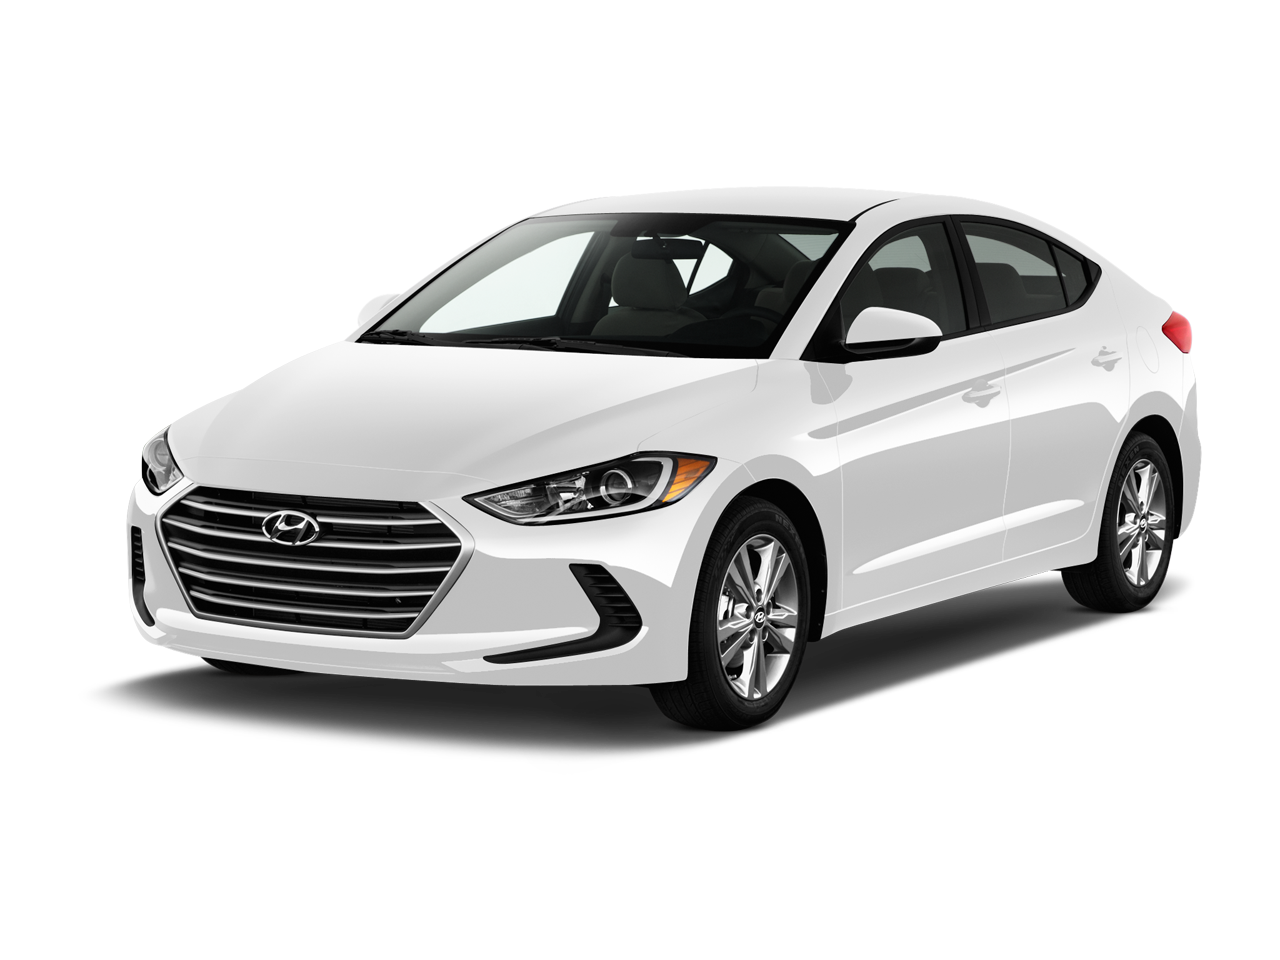 Elantra 2017 Silver >> Related Keywords & Suggestions for White Elantra